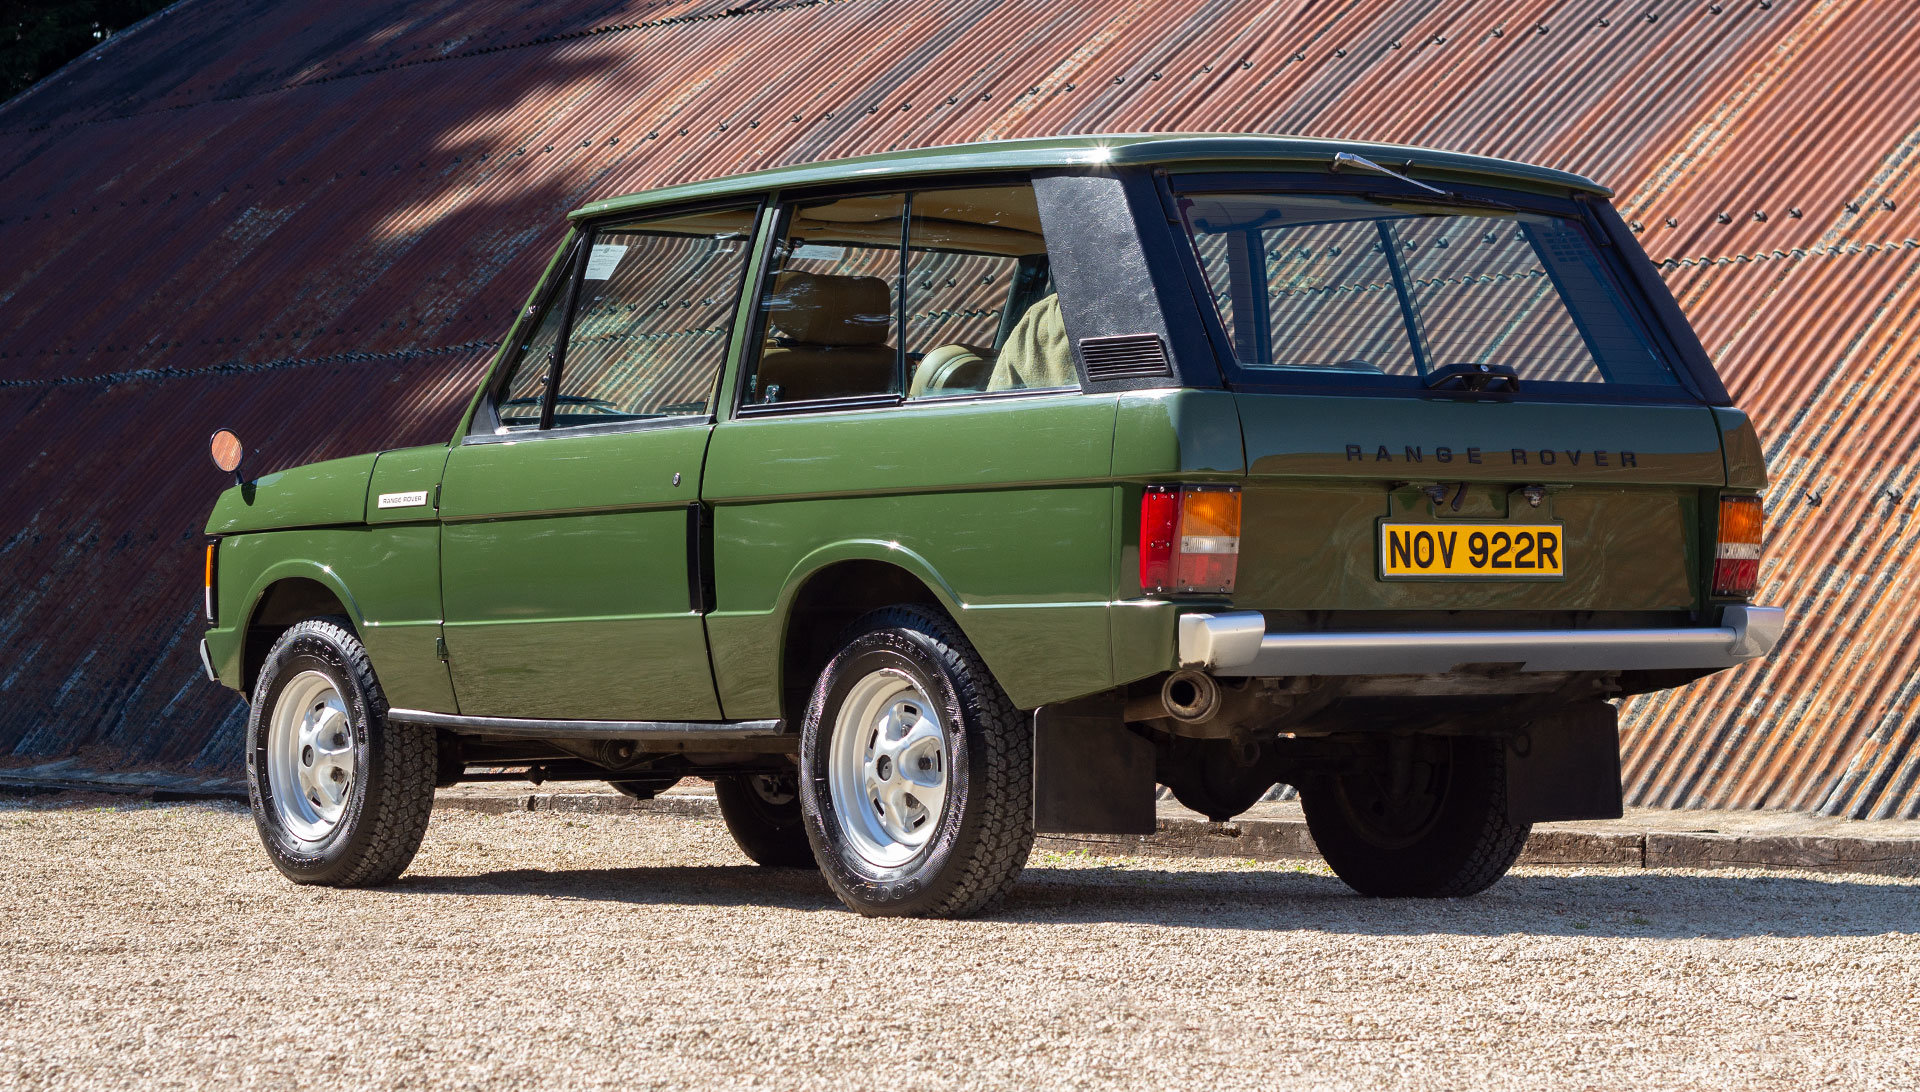 1976 Range Rover Suffix D For Sale (picture 3 of 20)